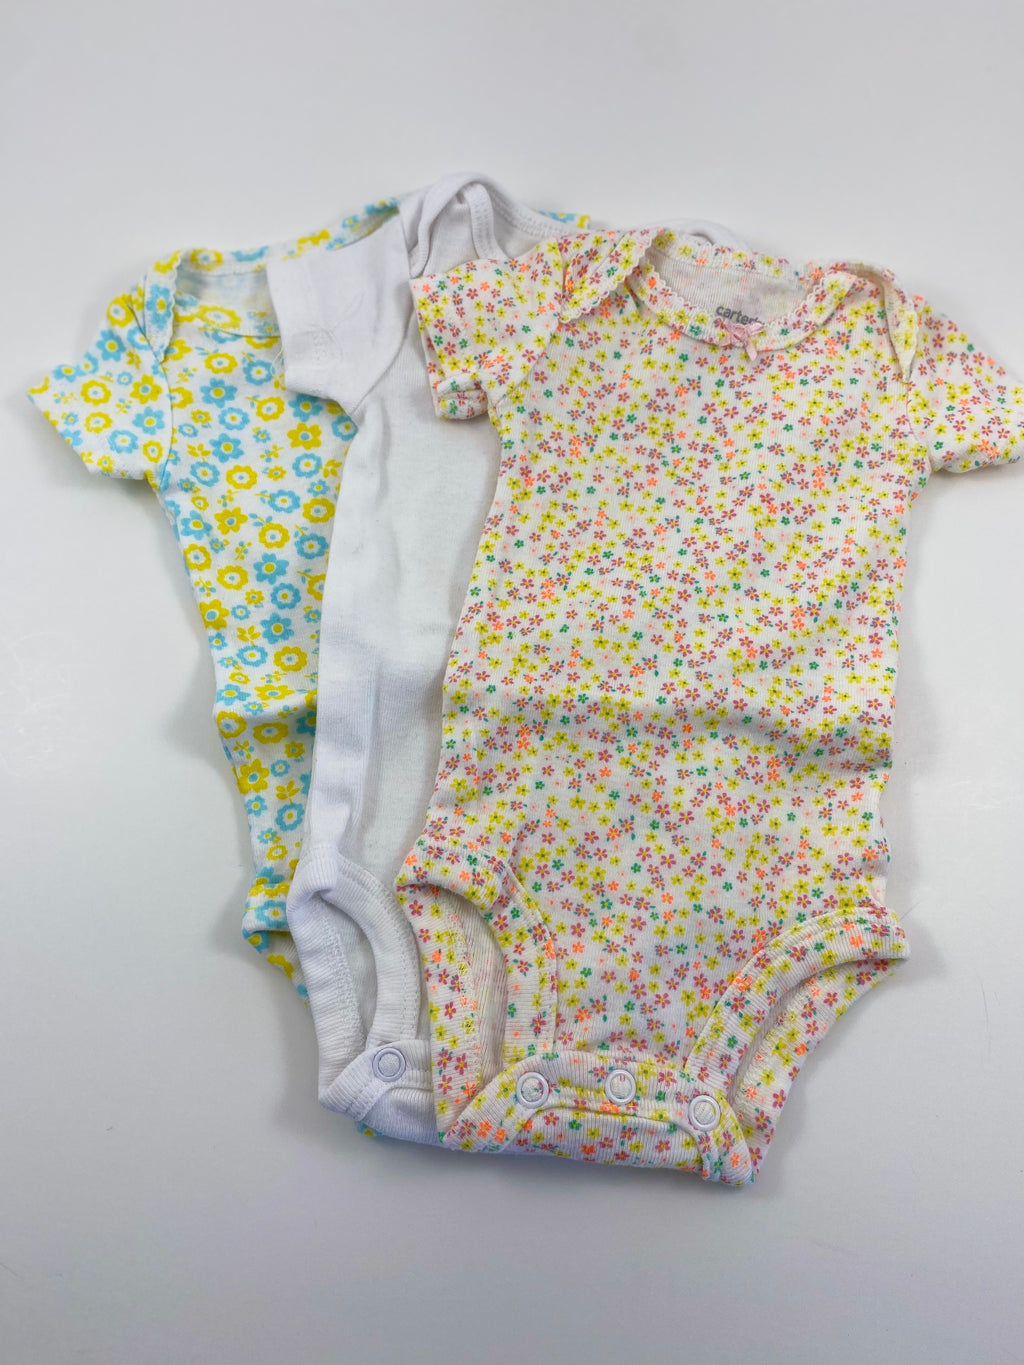 Girl's Short Sleeve Bodysuit - Size Newborn